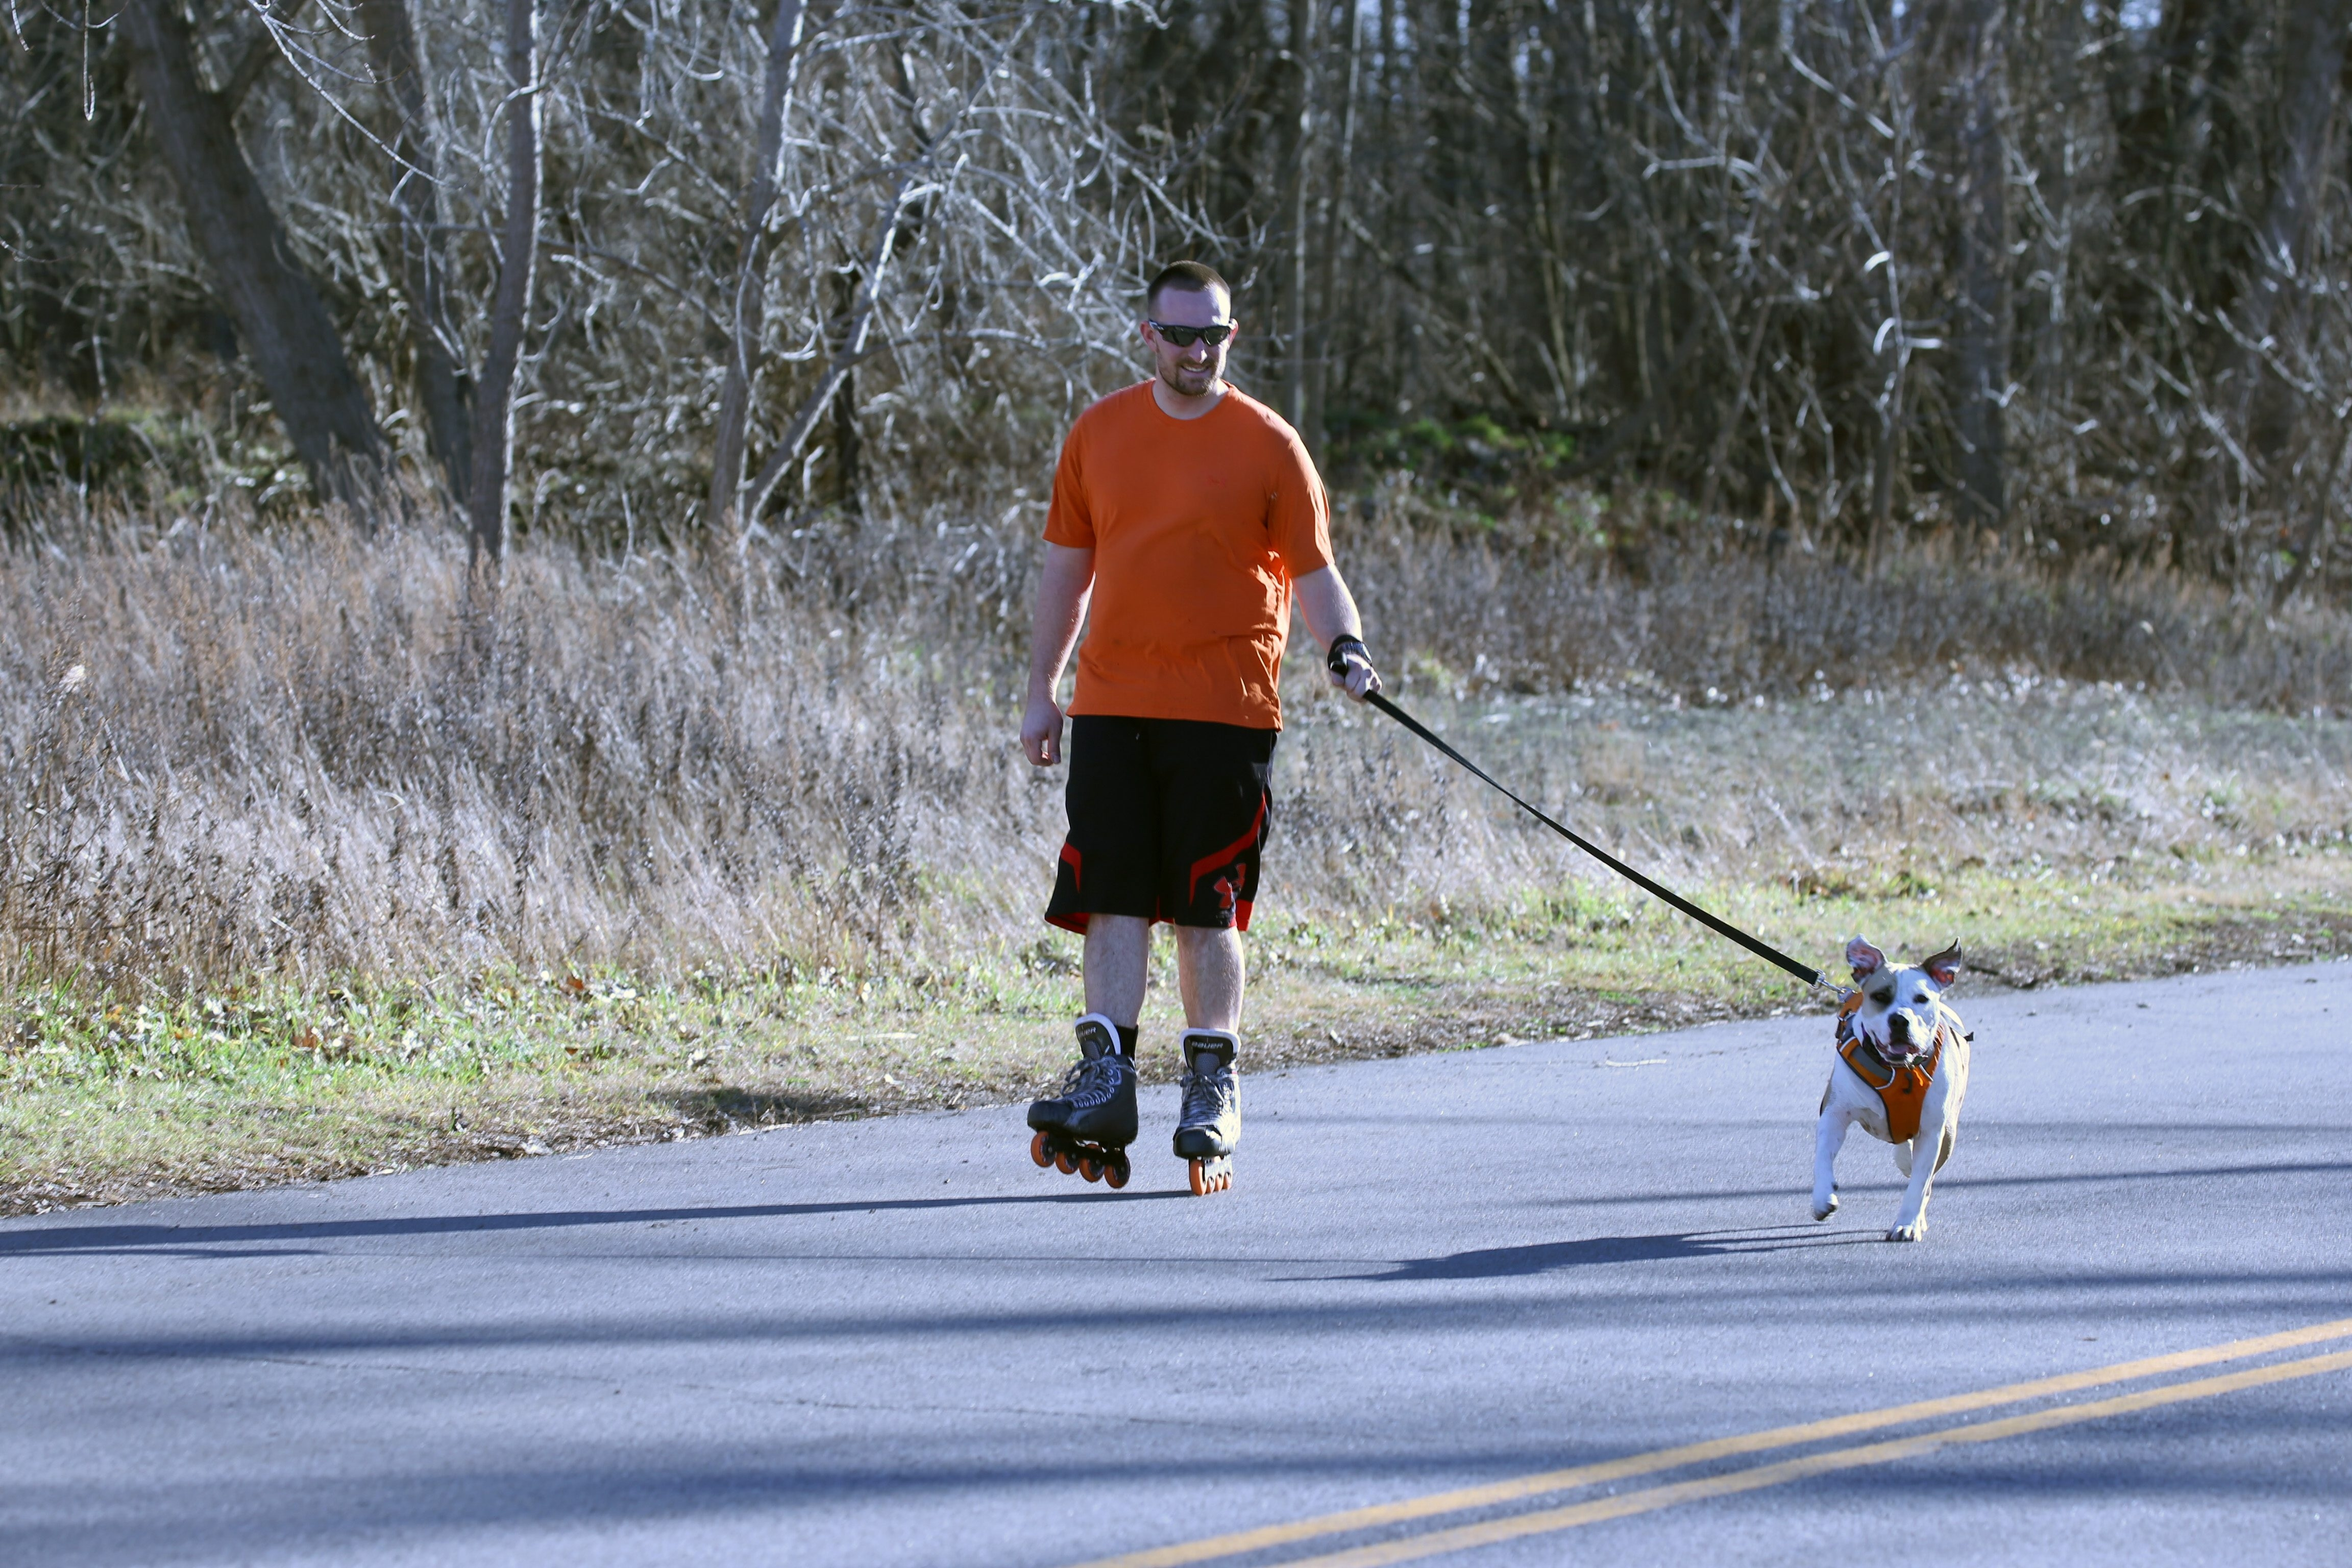 Jim Smith picked a fine December Thursday to rollerblade with his dog Maggie on Hopkins Road in Amherst. They won't have to worry about snow anytime soon.